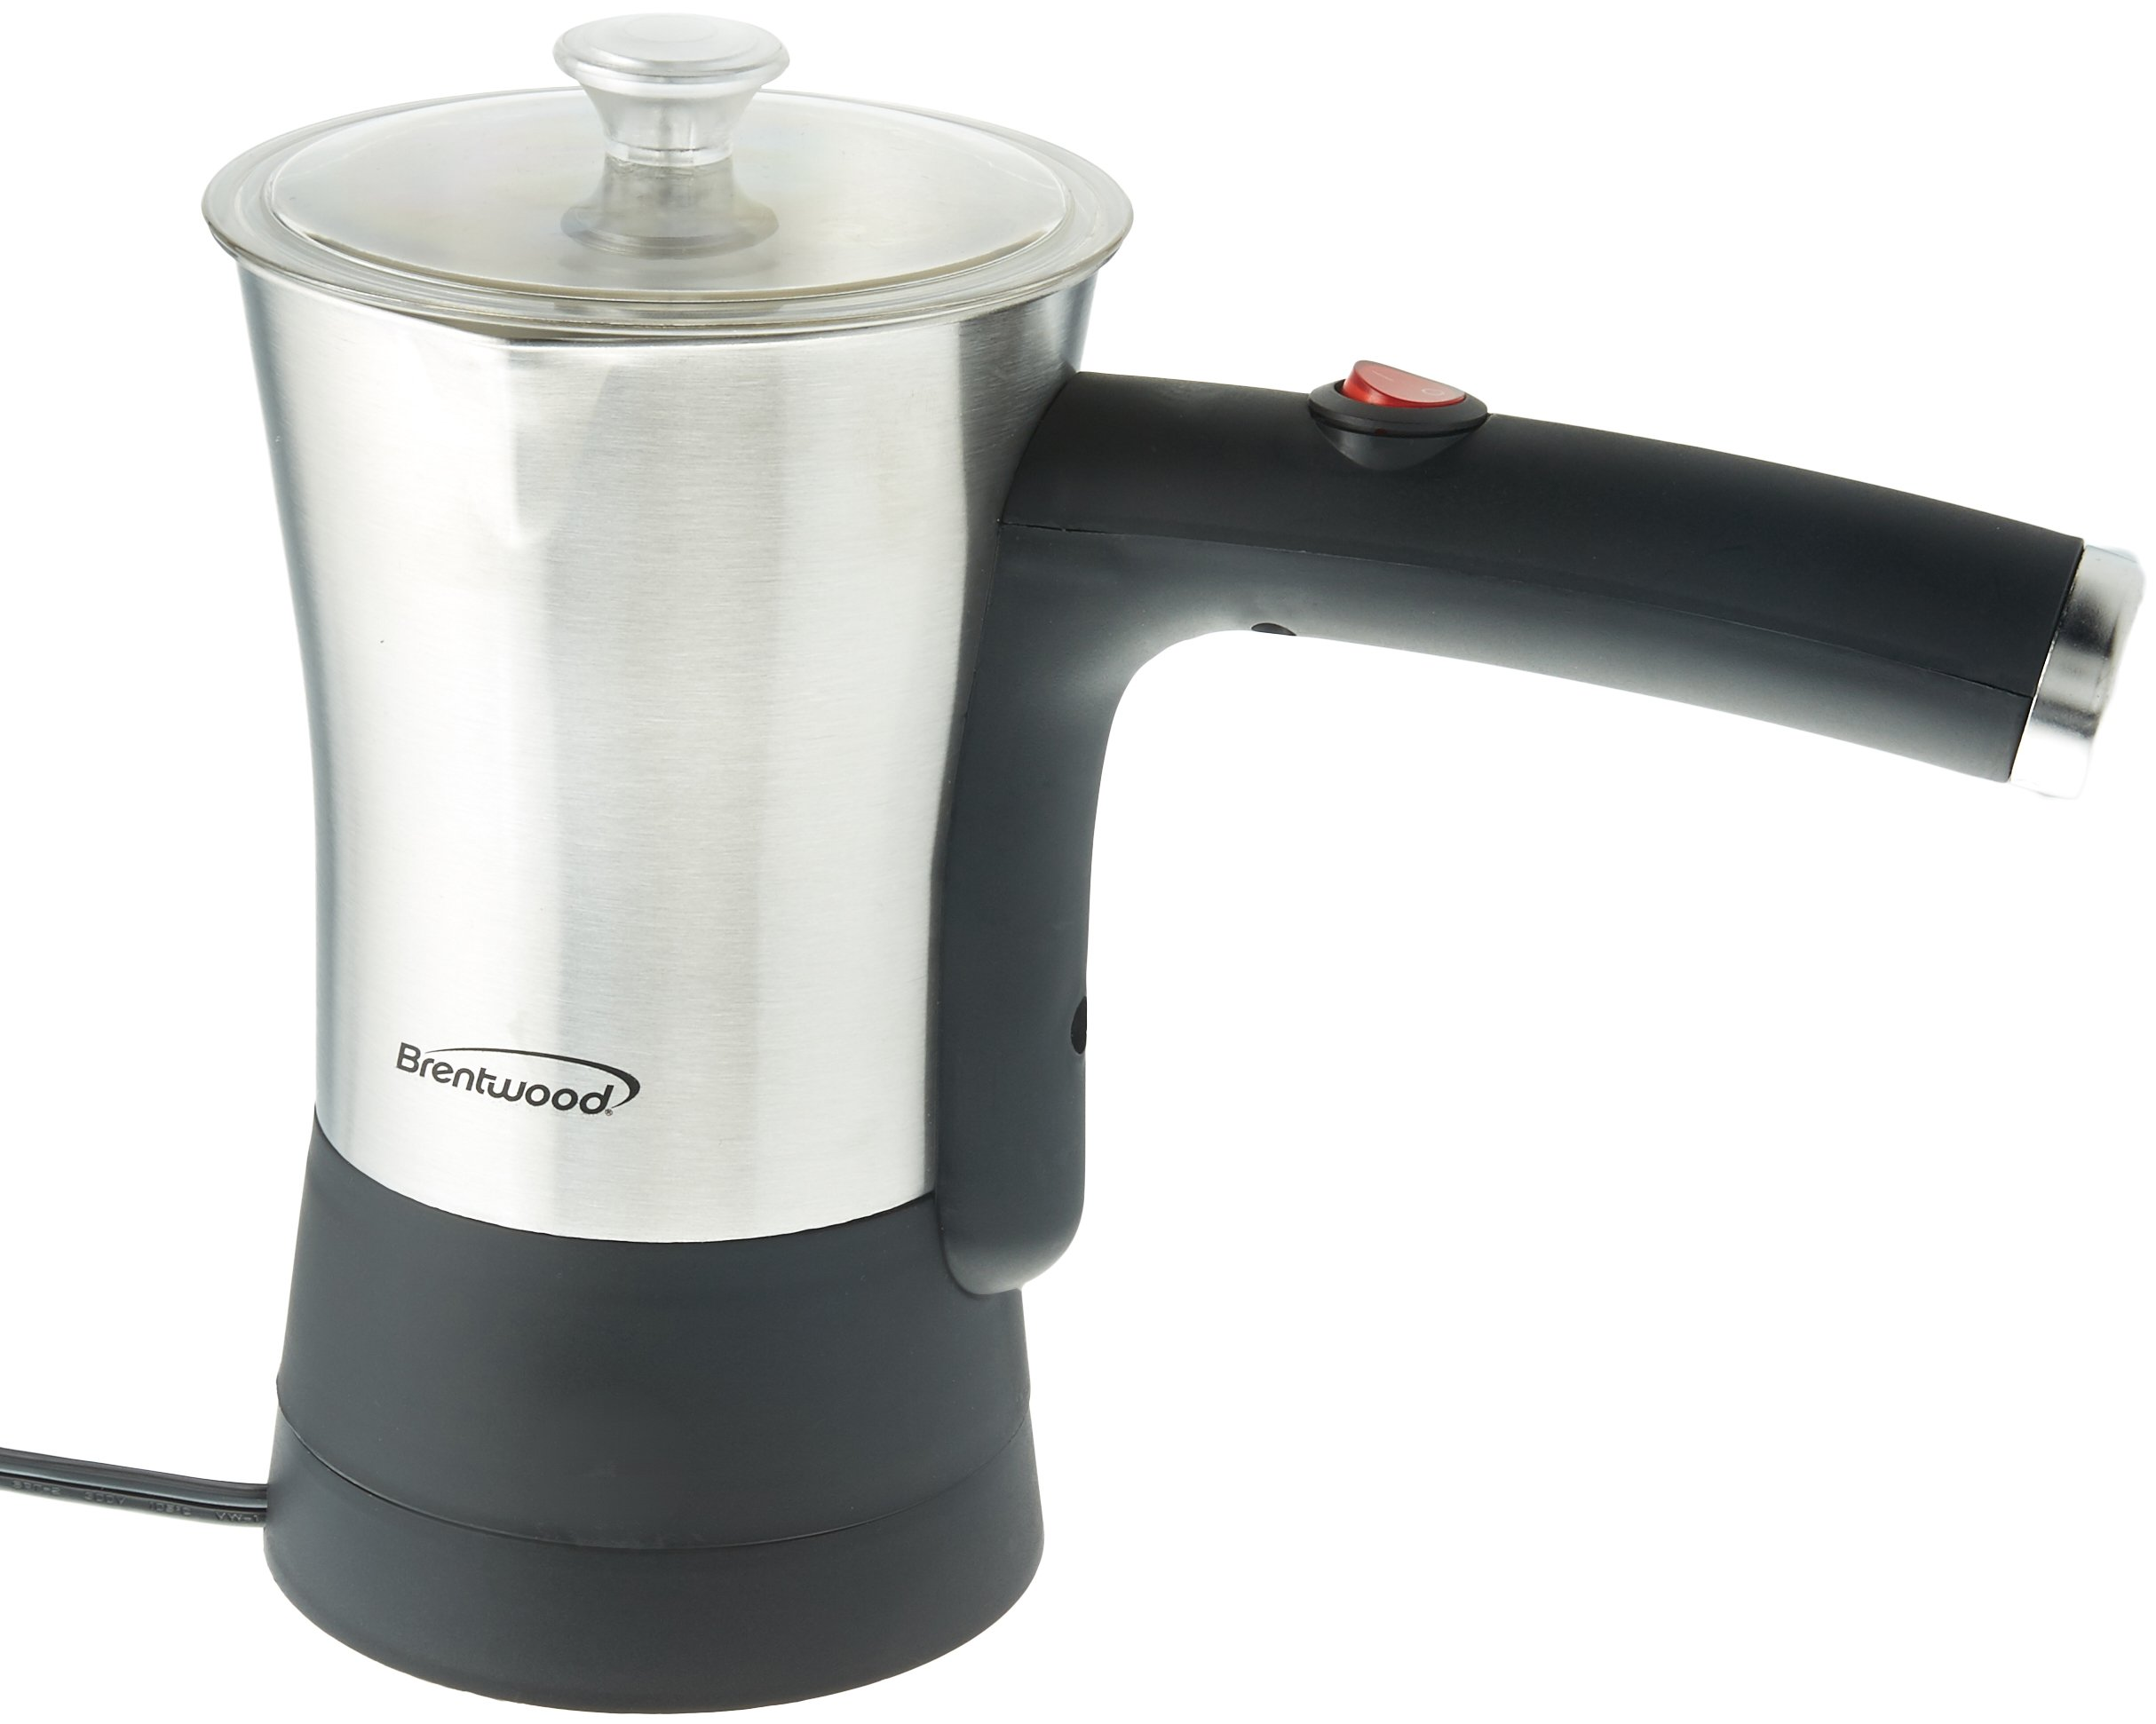 Brentwood Turkish Coffee Maker, 4-Cups, Stainless Steel